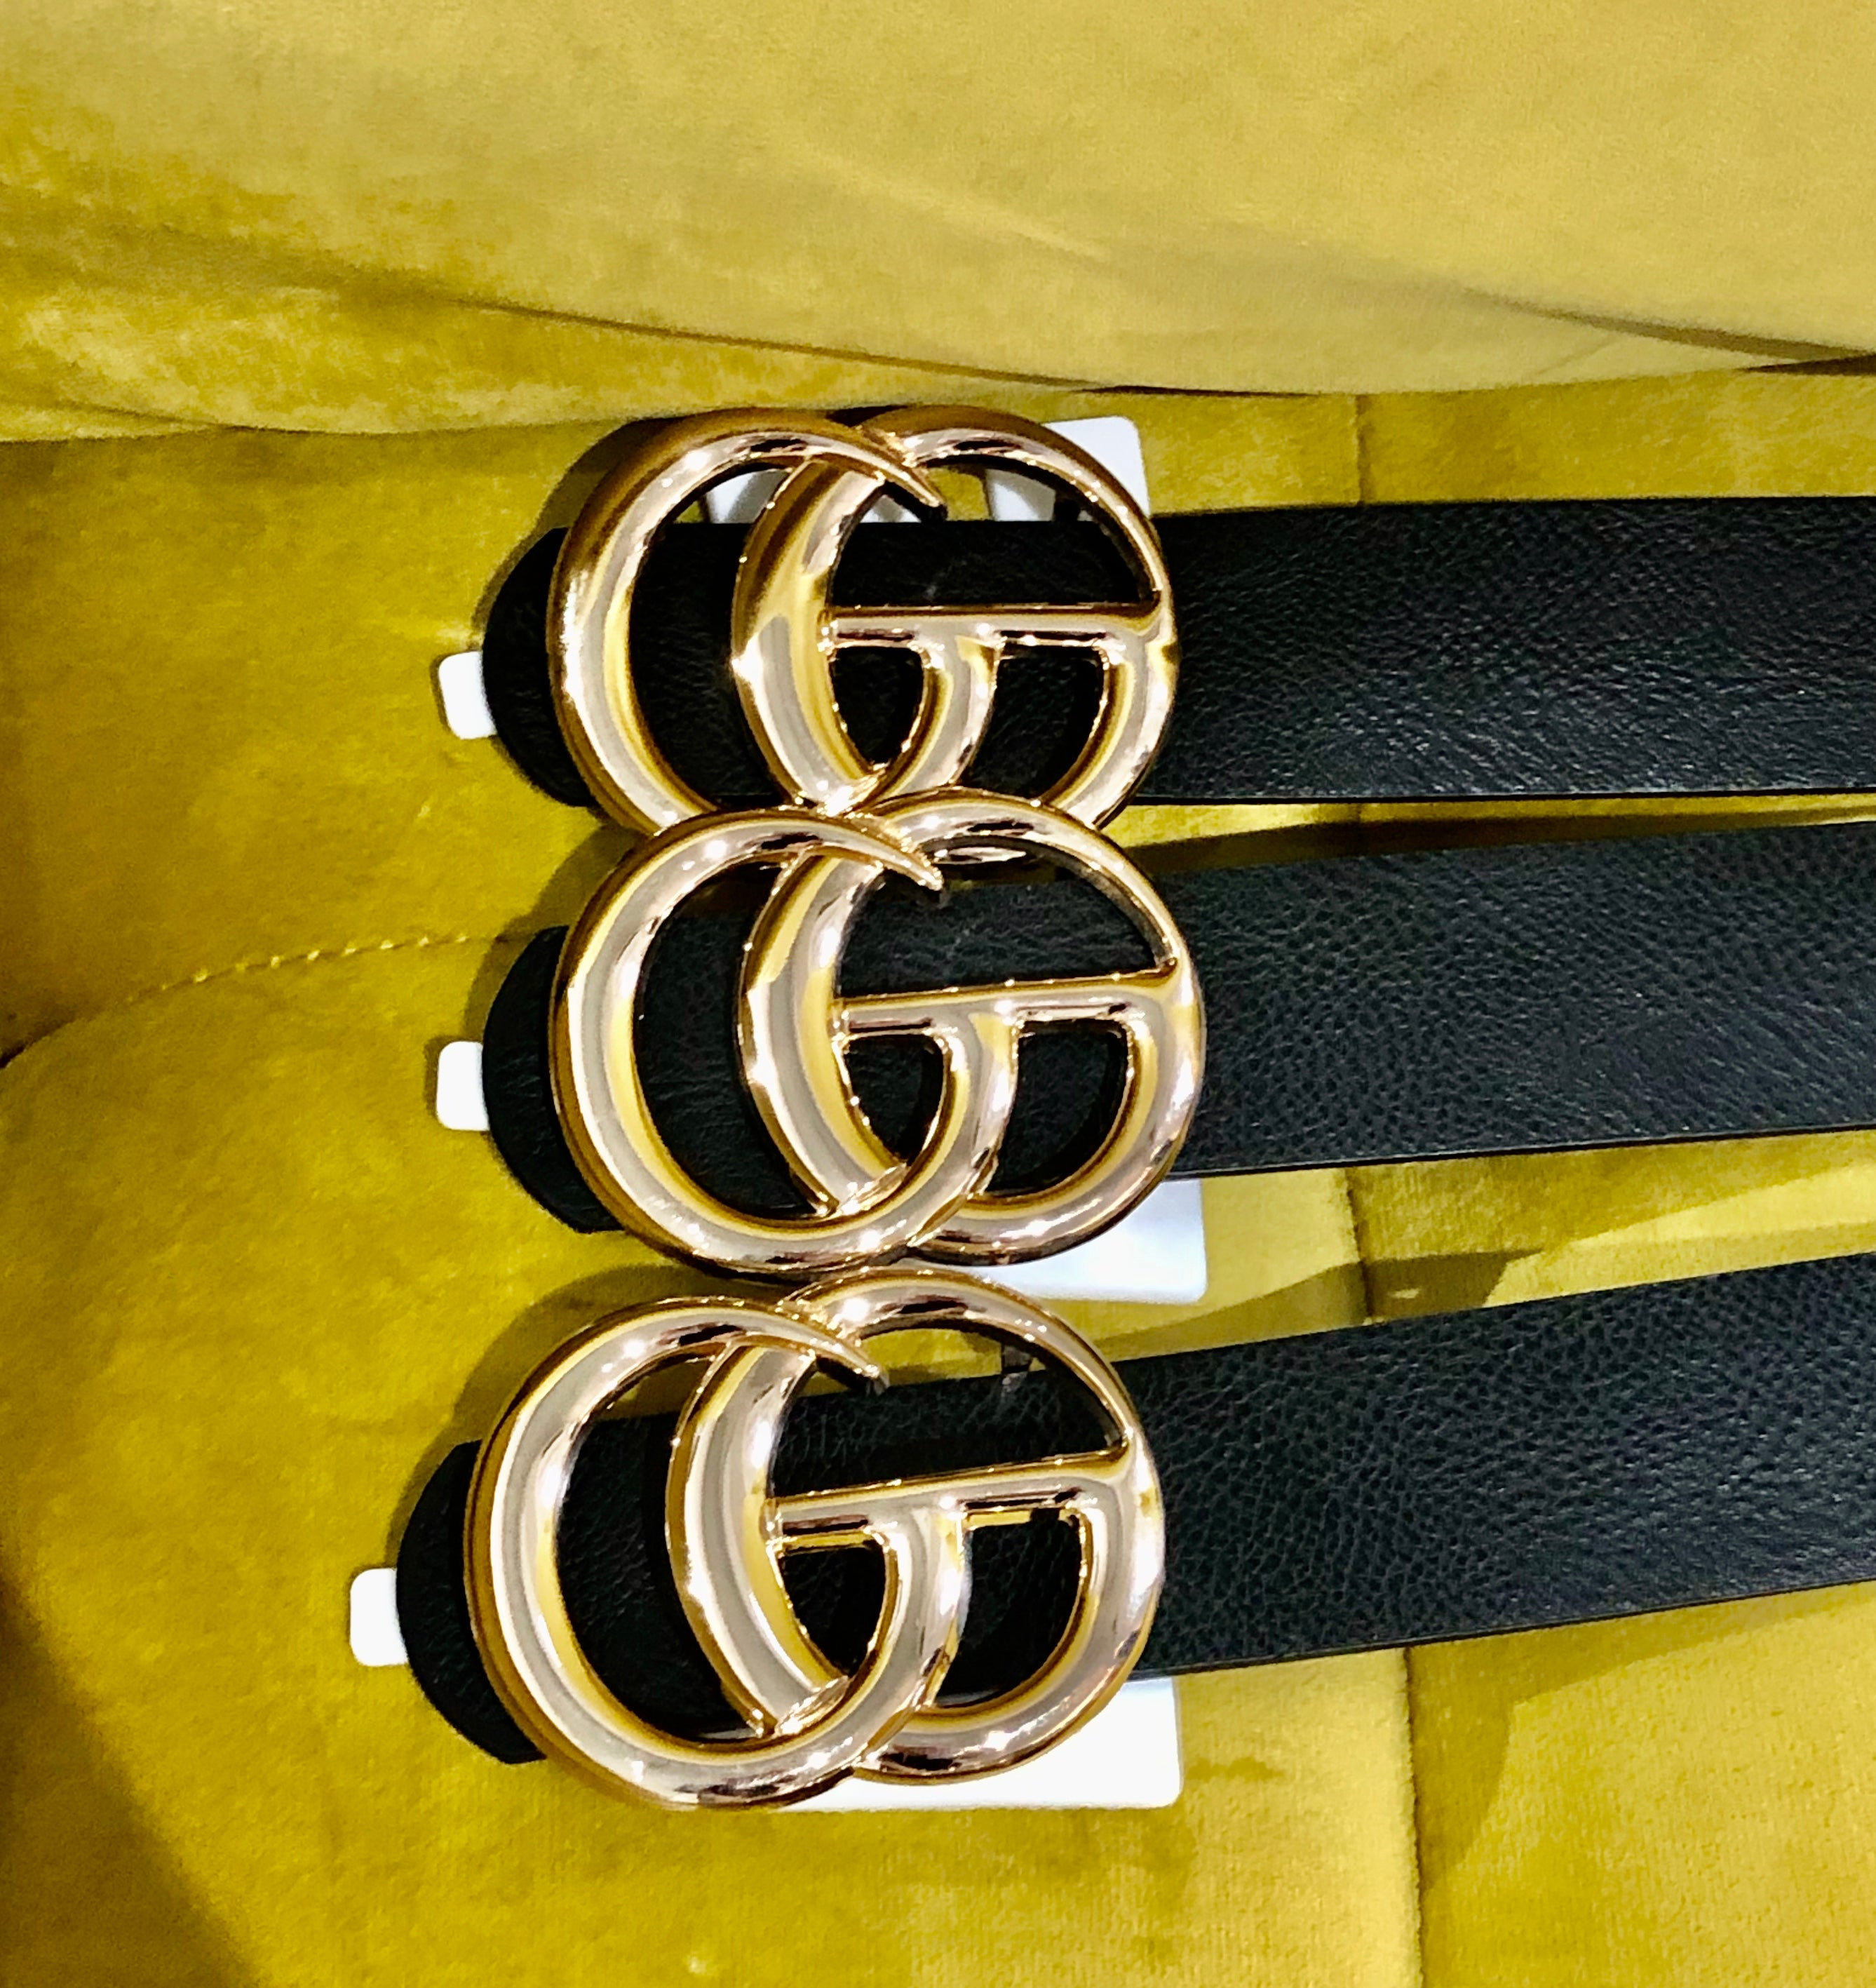 GG Belt - So many styles, Dupe